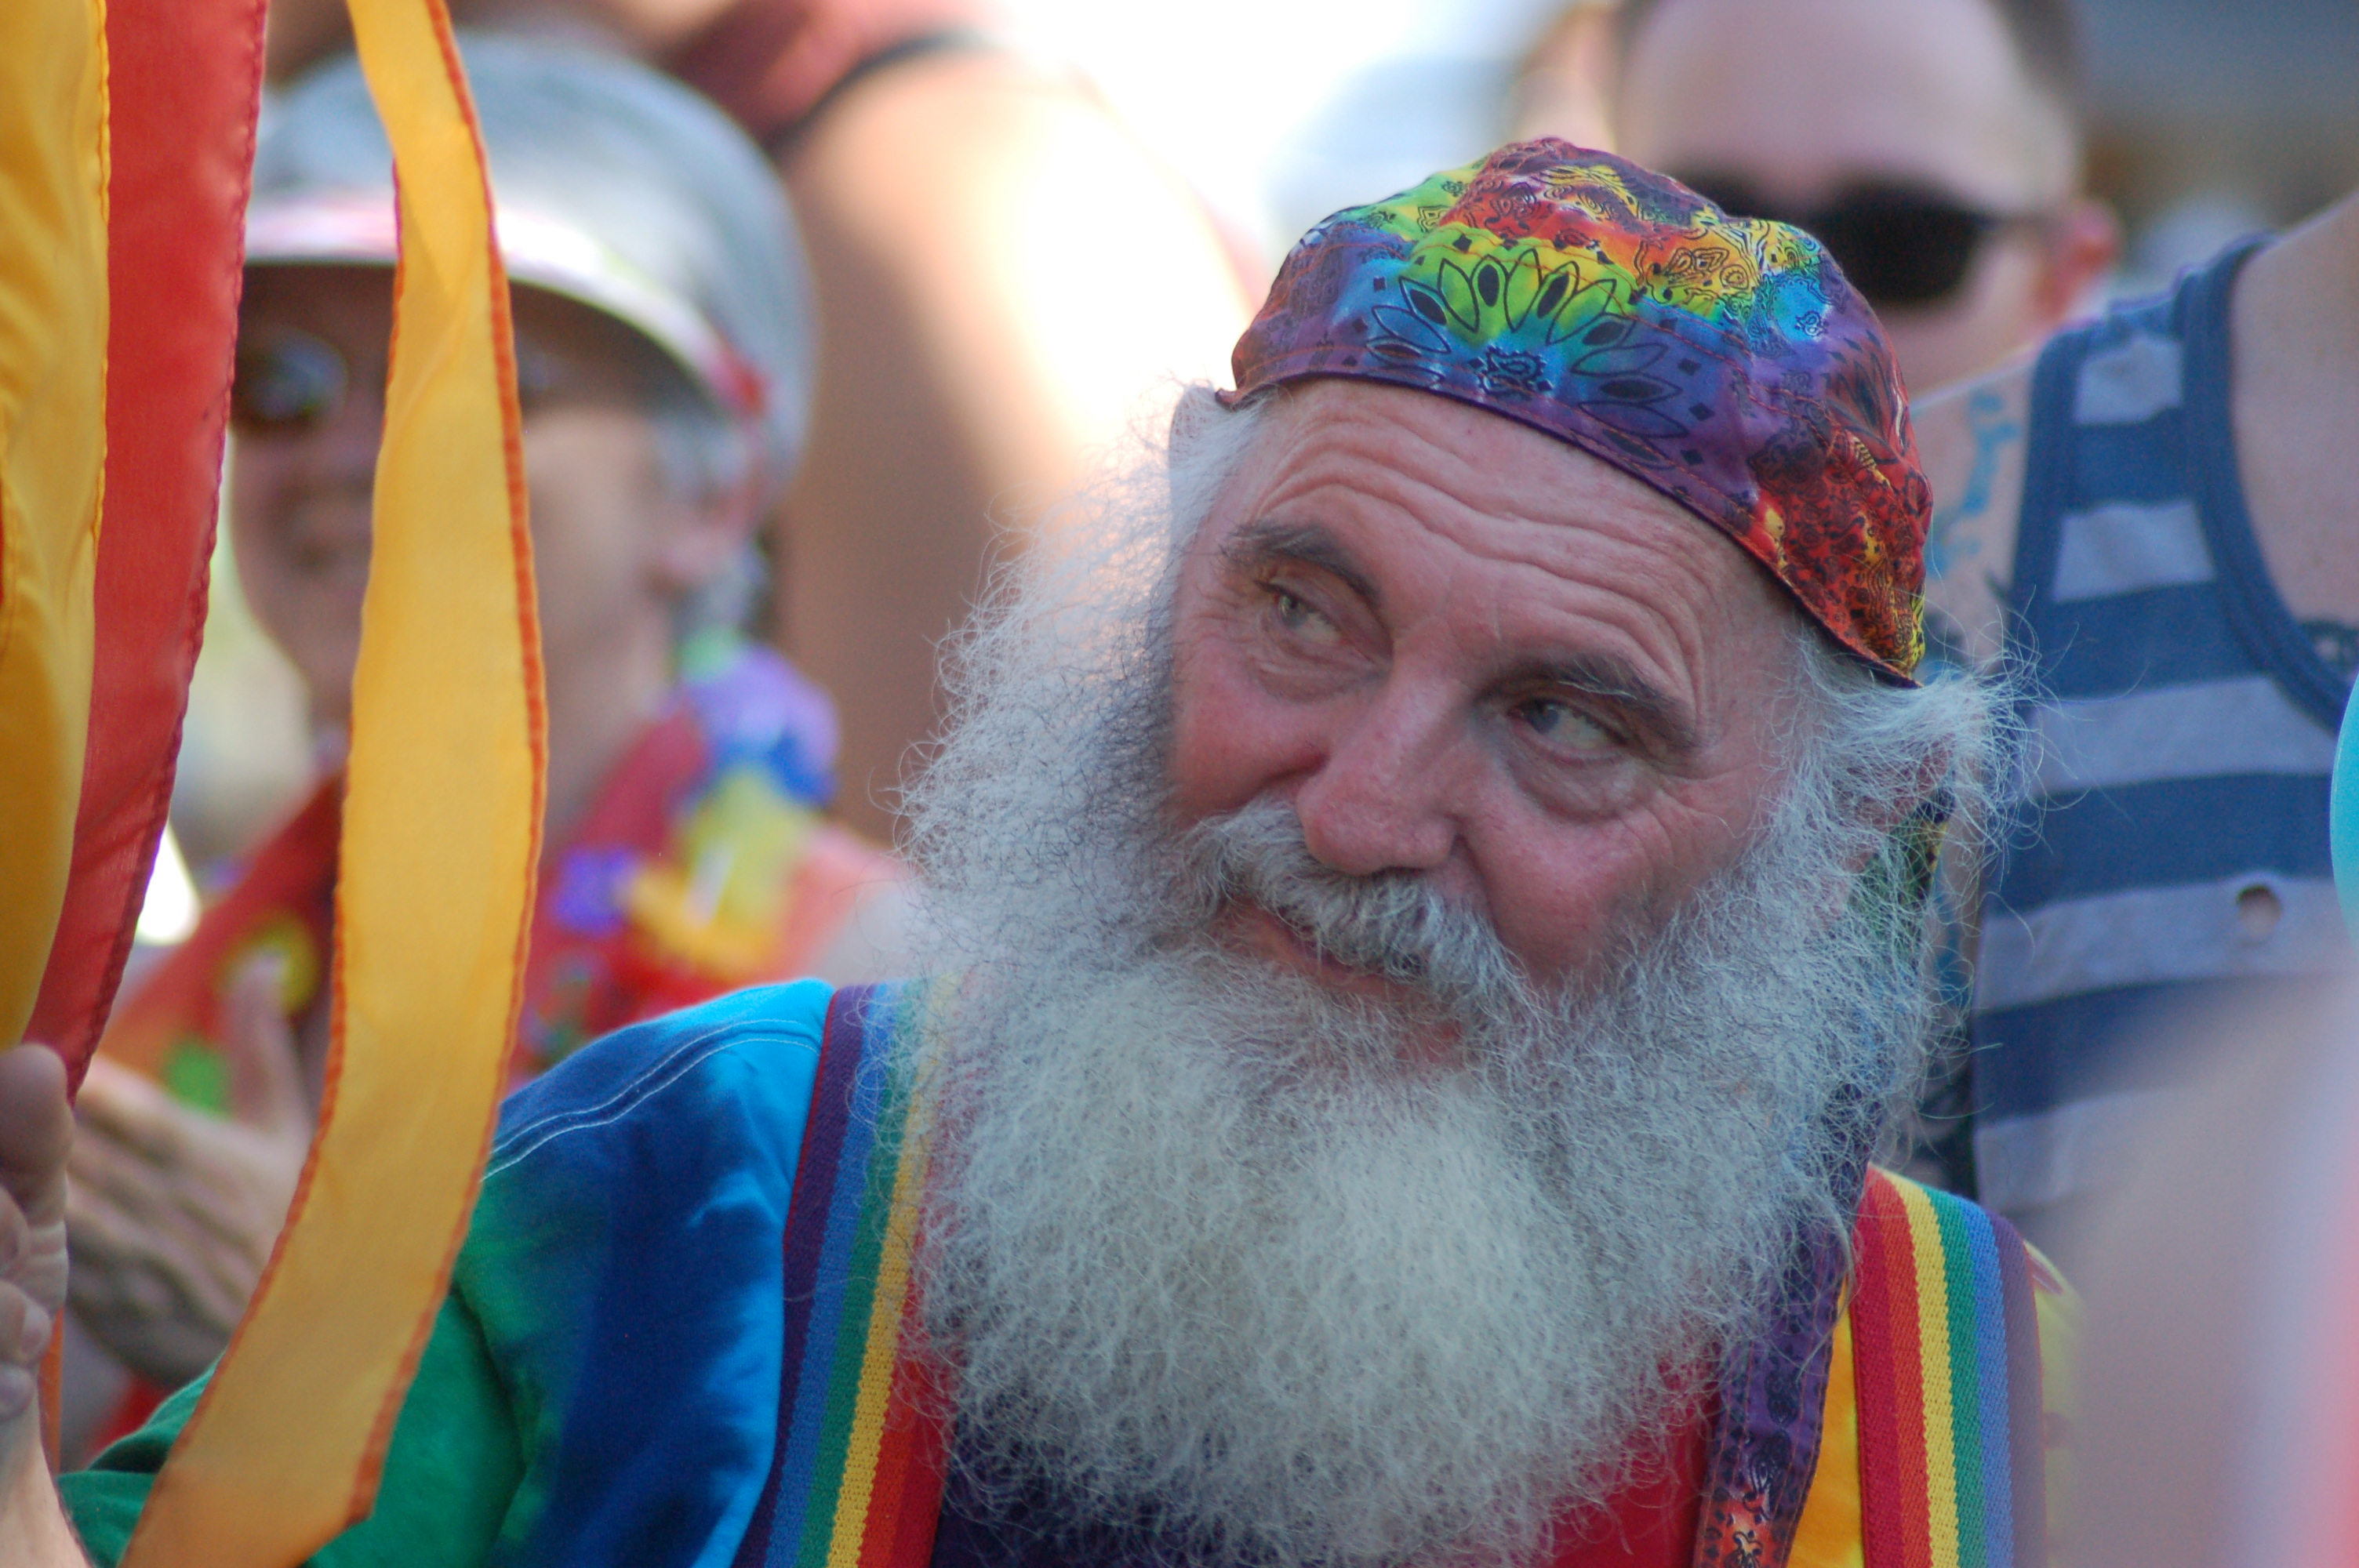 Attendees of the gay pride celebration dressed in rainbow clothing and enjoyed an evening at Vernon Worthen Park, St. George, Utah, June 25, 2016   Photo by Hollie Reina, St. George News